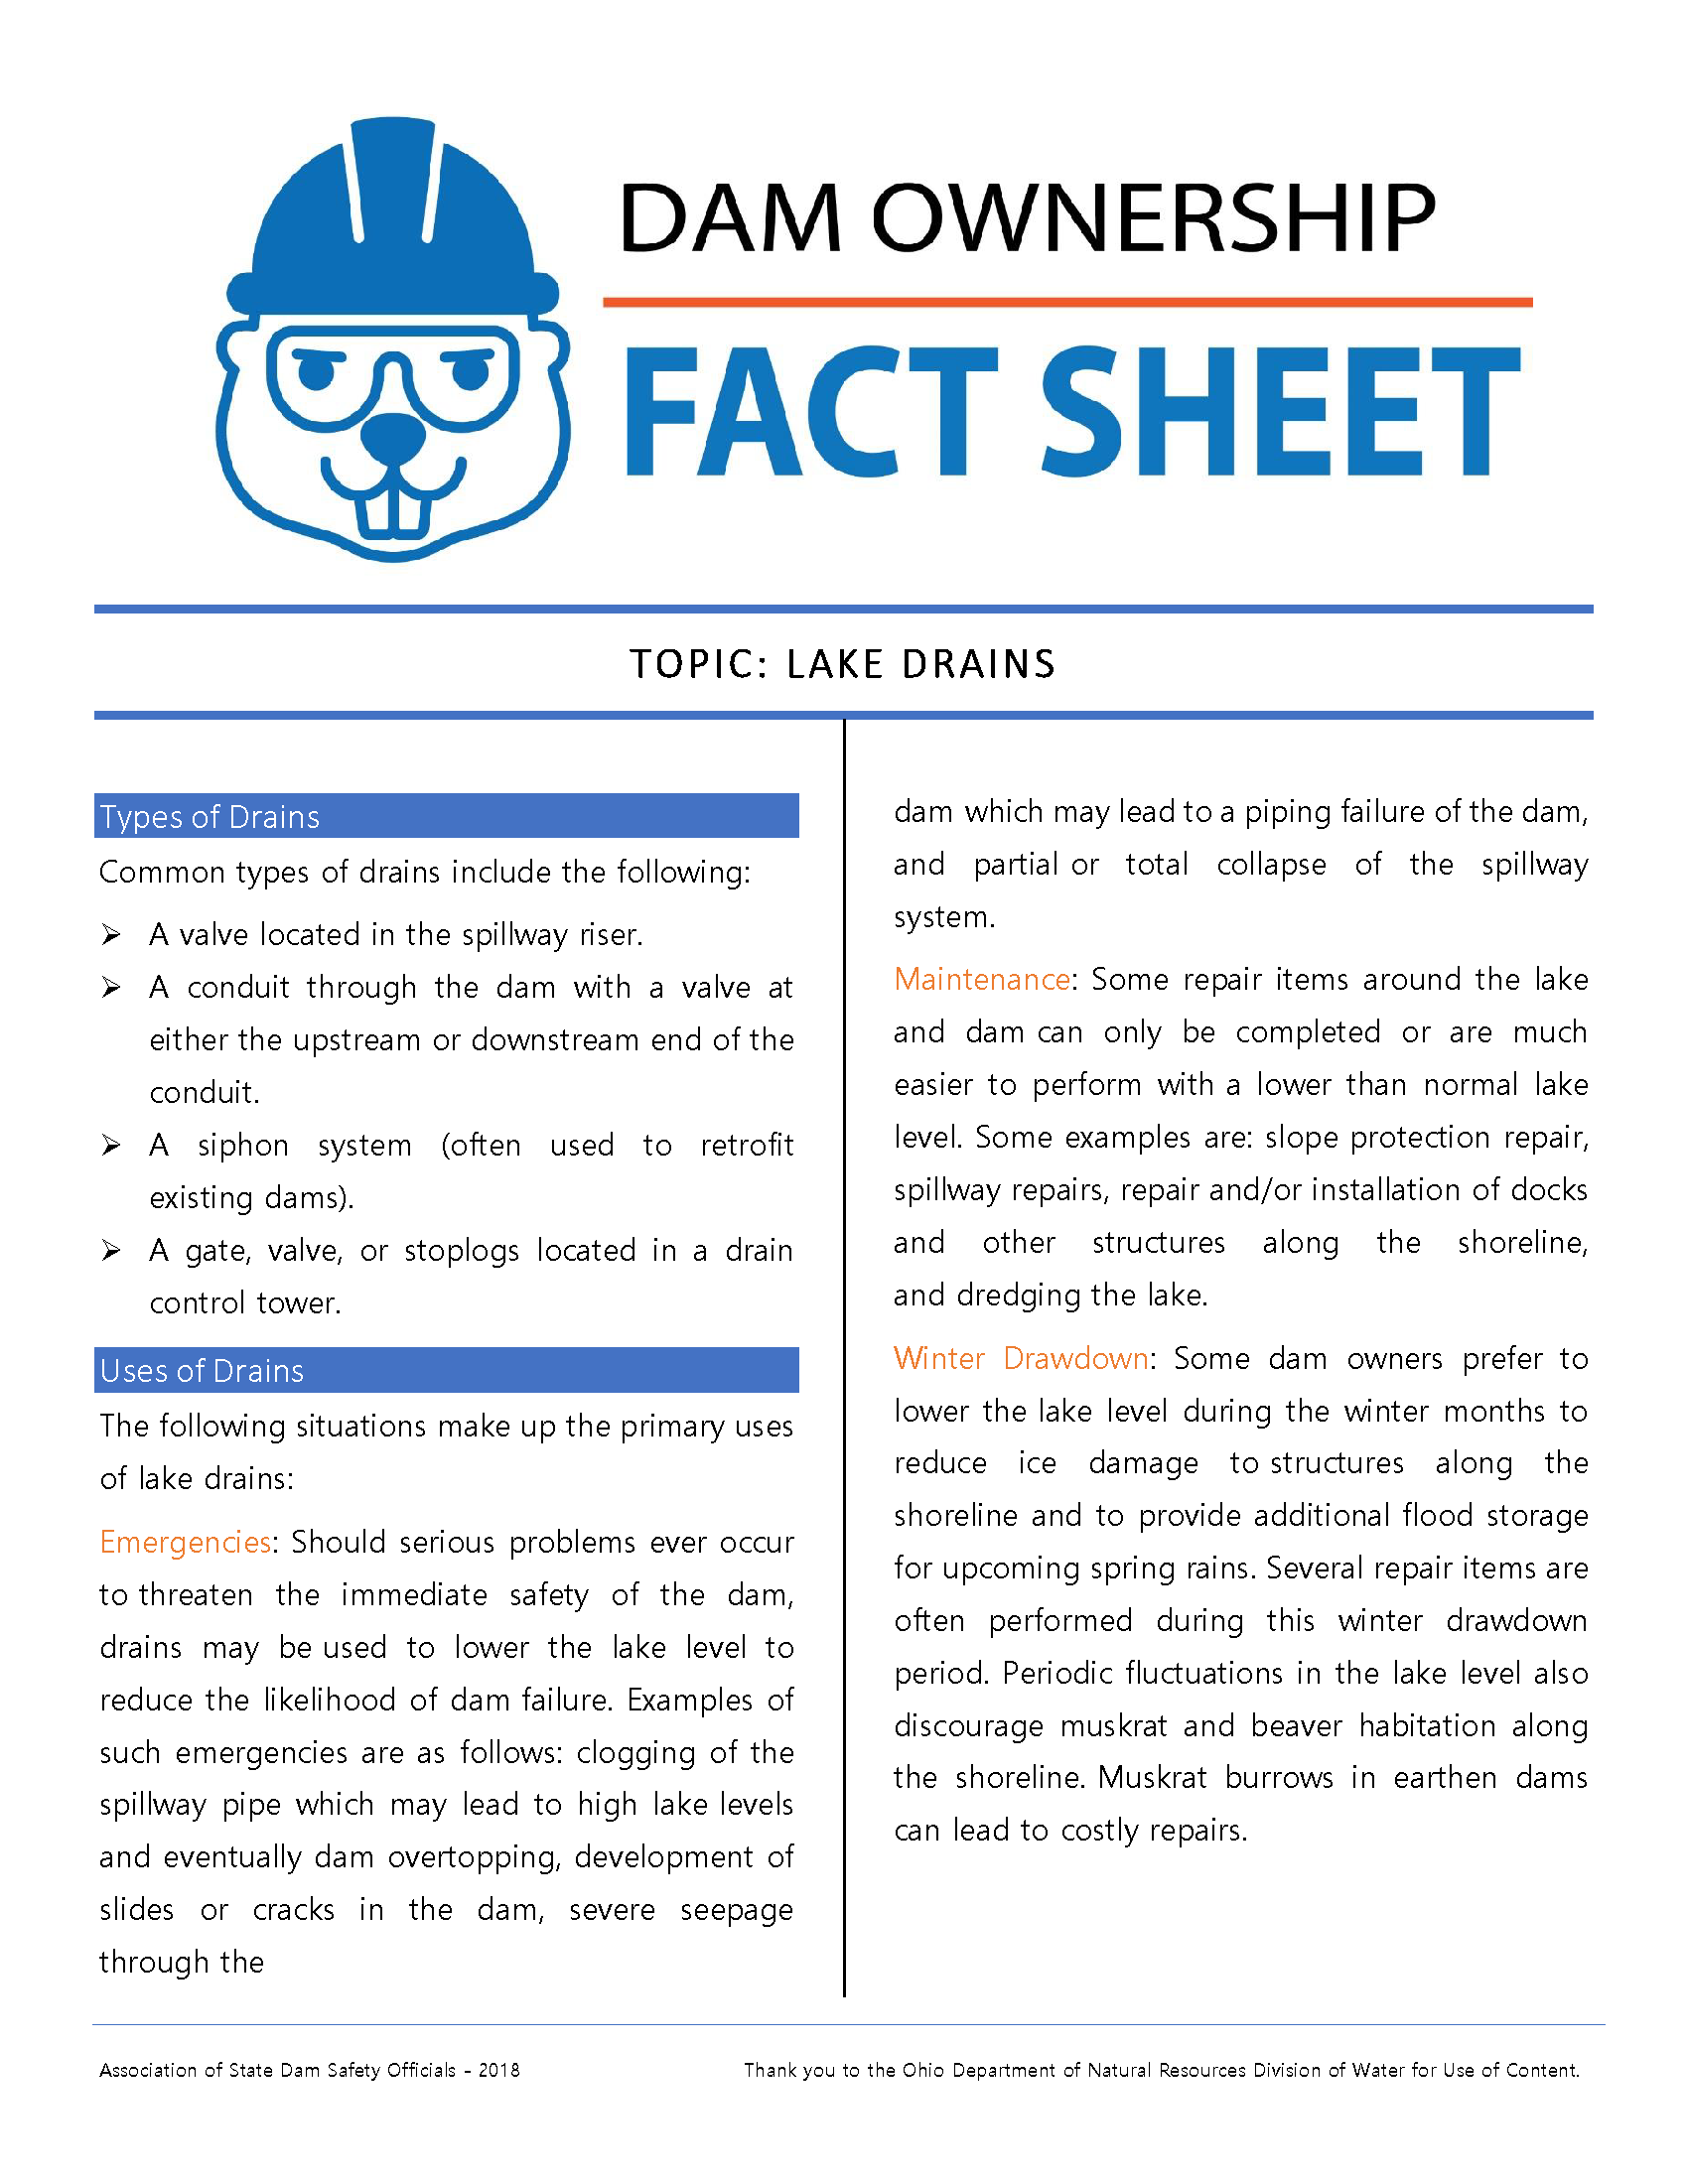 Lake Drains Fact Sheet 2018_Page_1.png